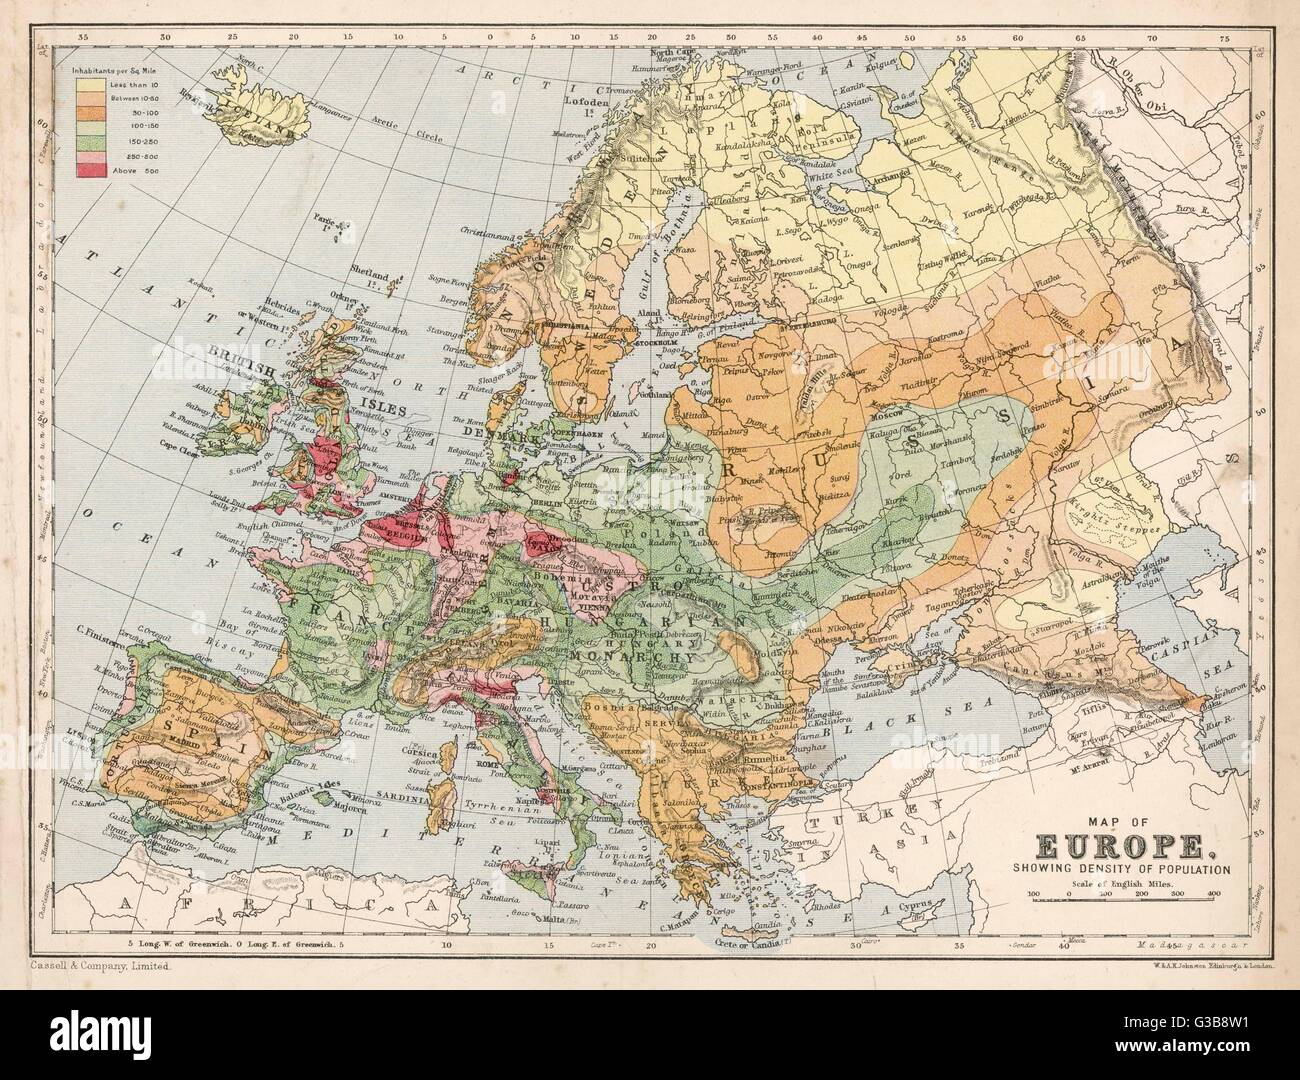 Map of Europe, showing density of population        Date: late 19th century? - Stock Image